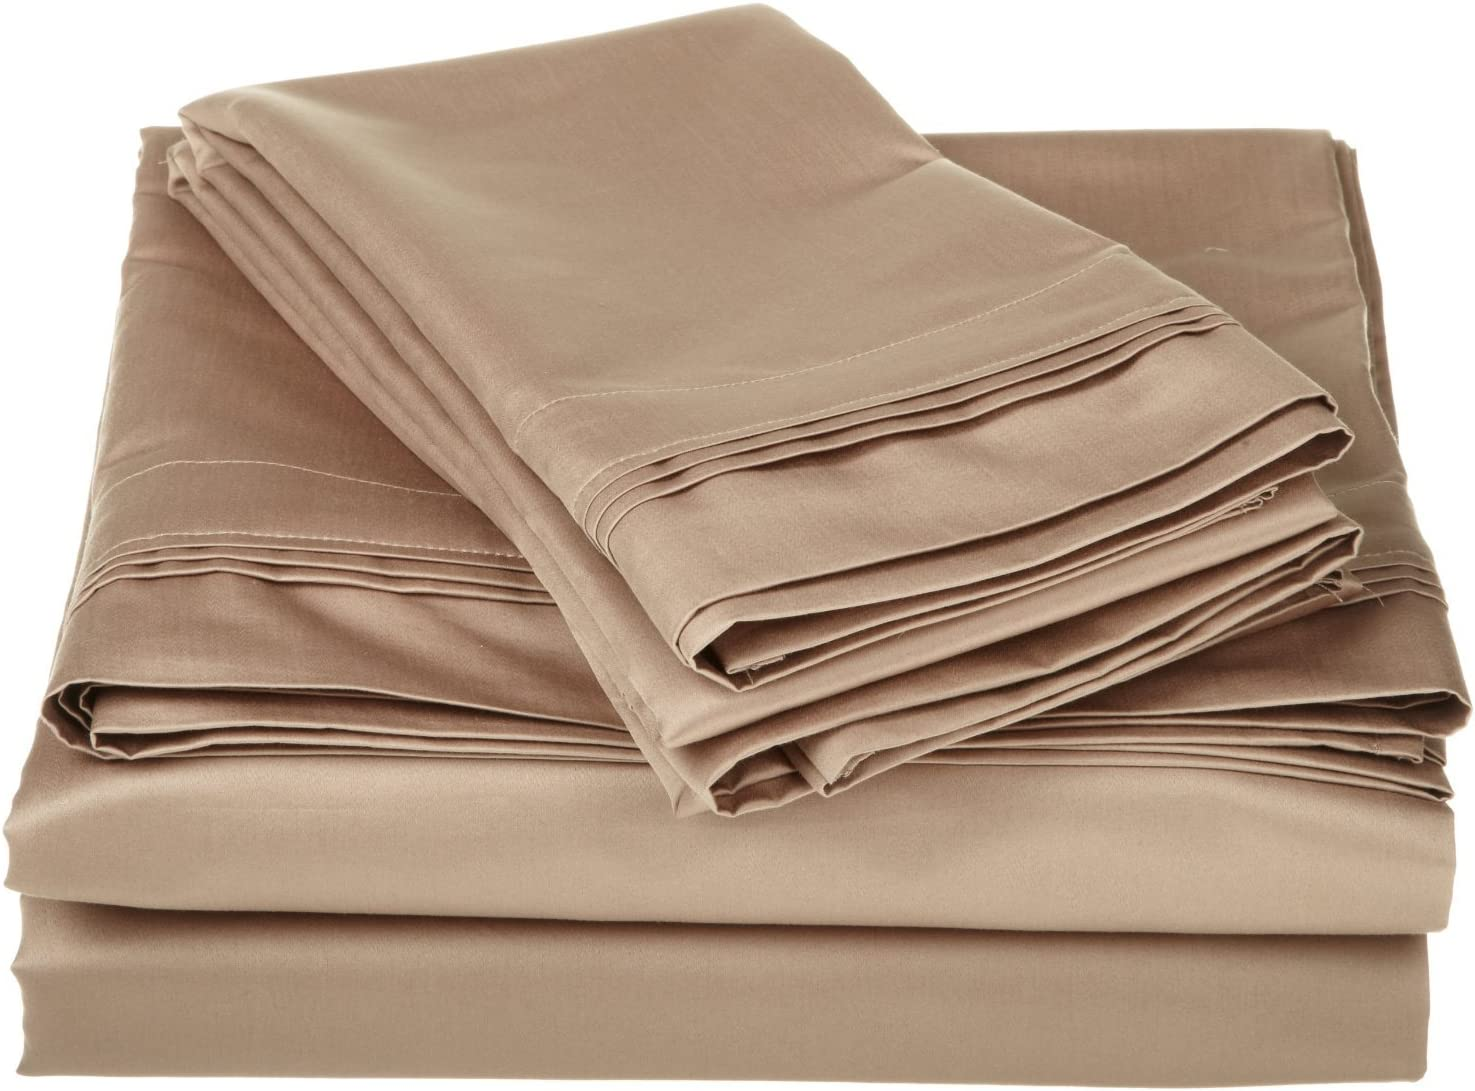 Baltimore Mall Impressions 800 Thread Count Combed Super beauty product restock quality top! Oversized King Cotton Sheet